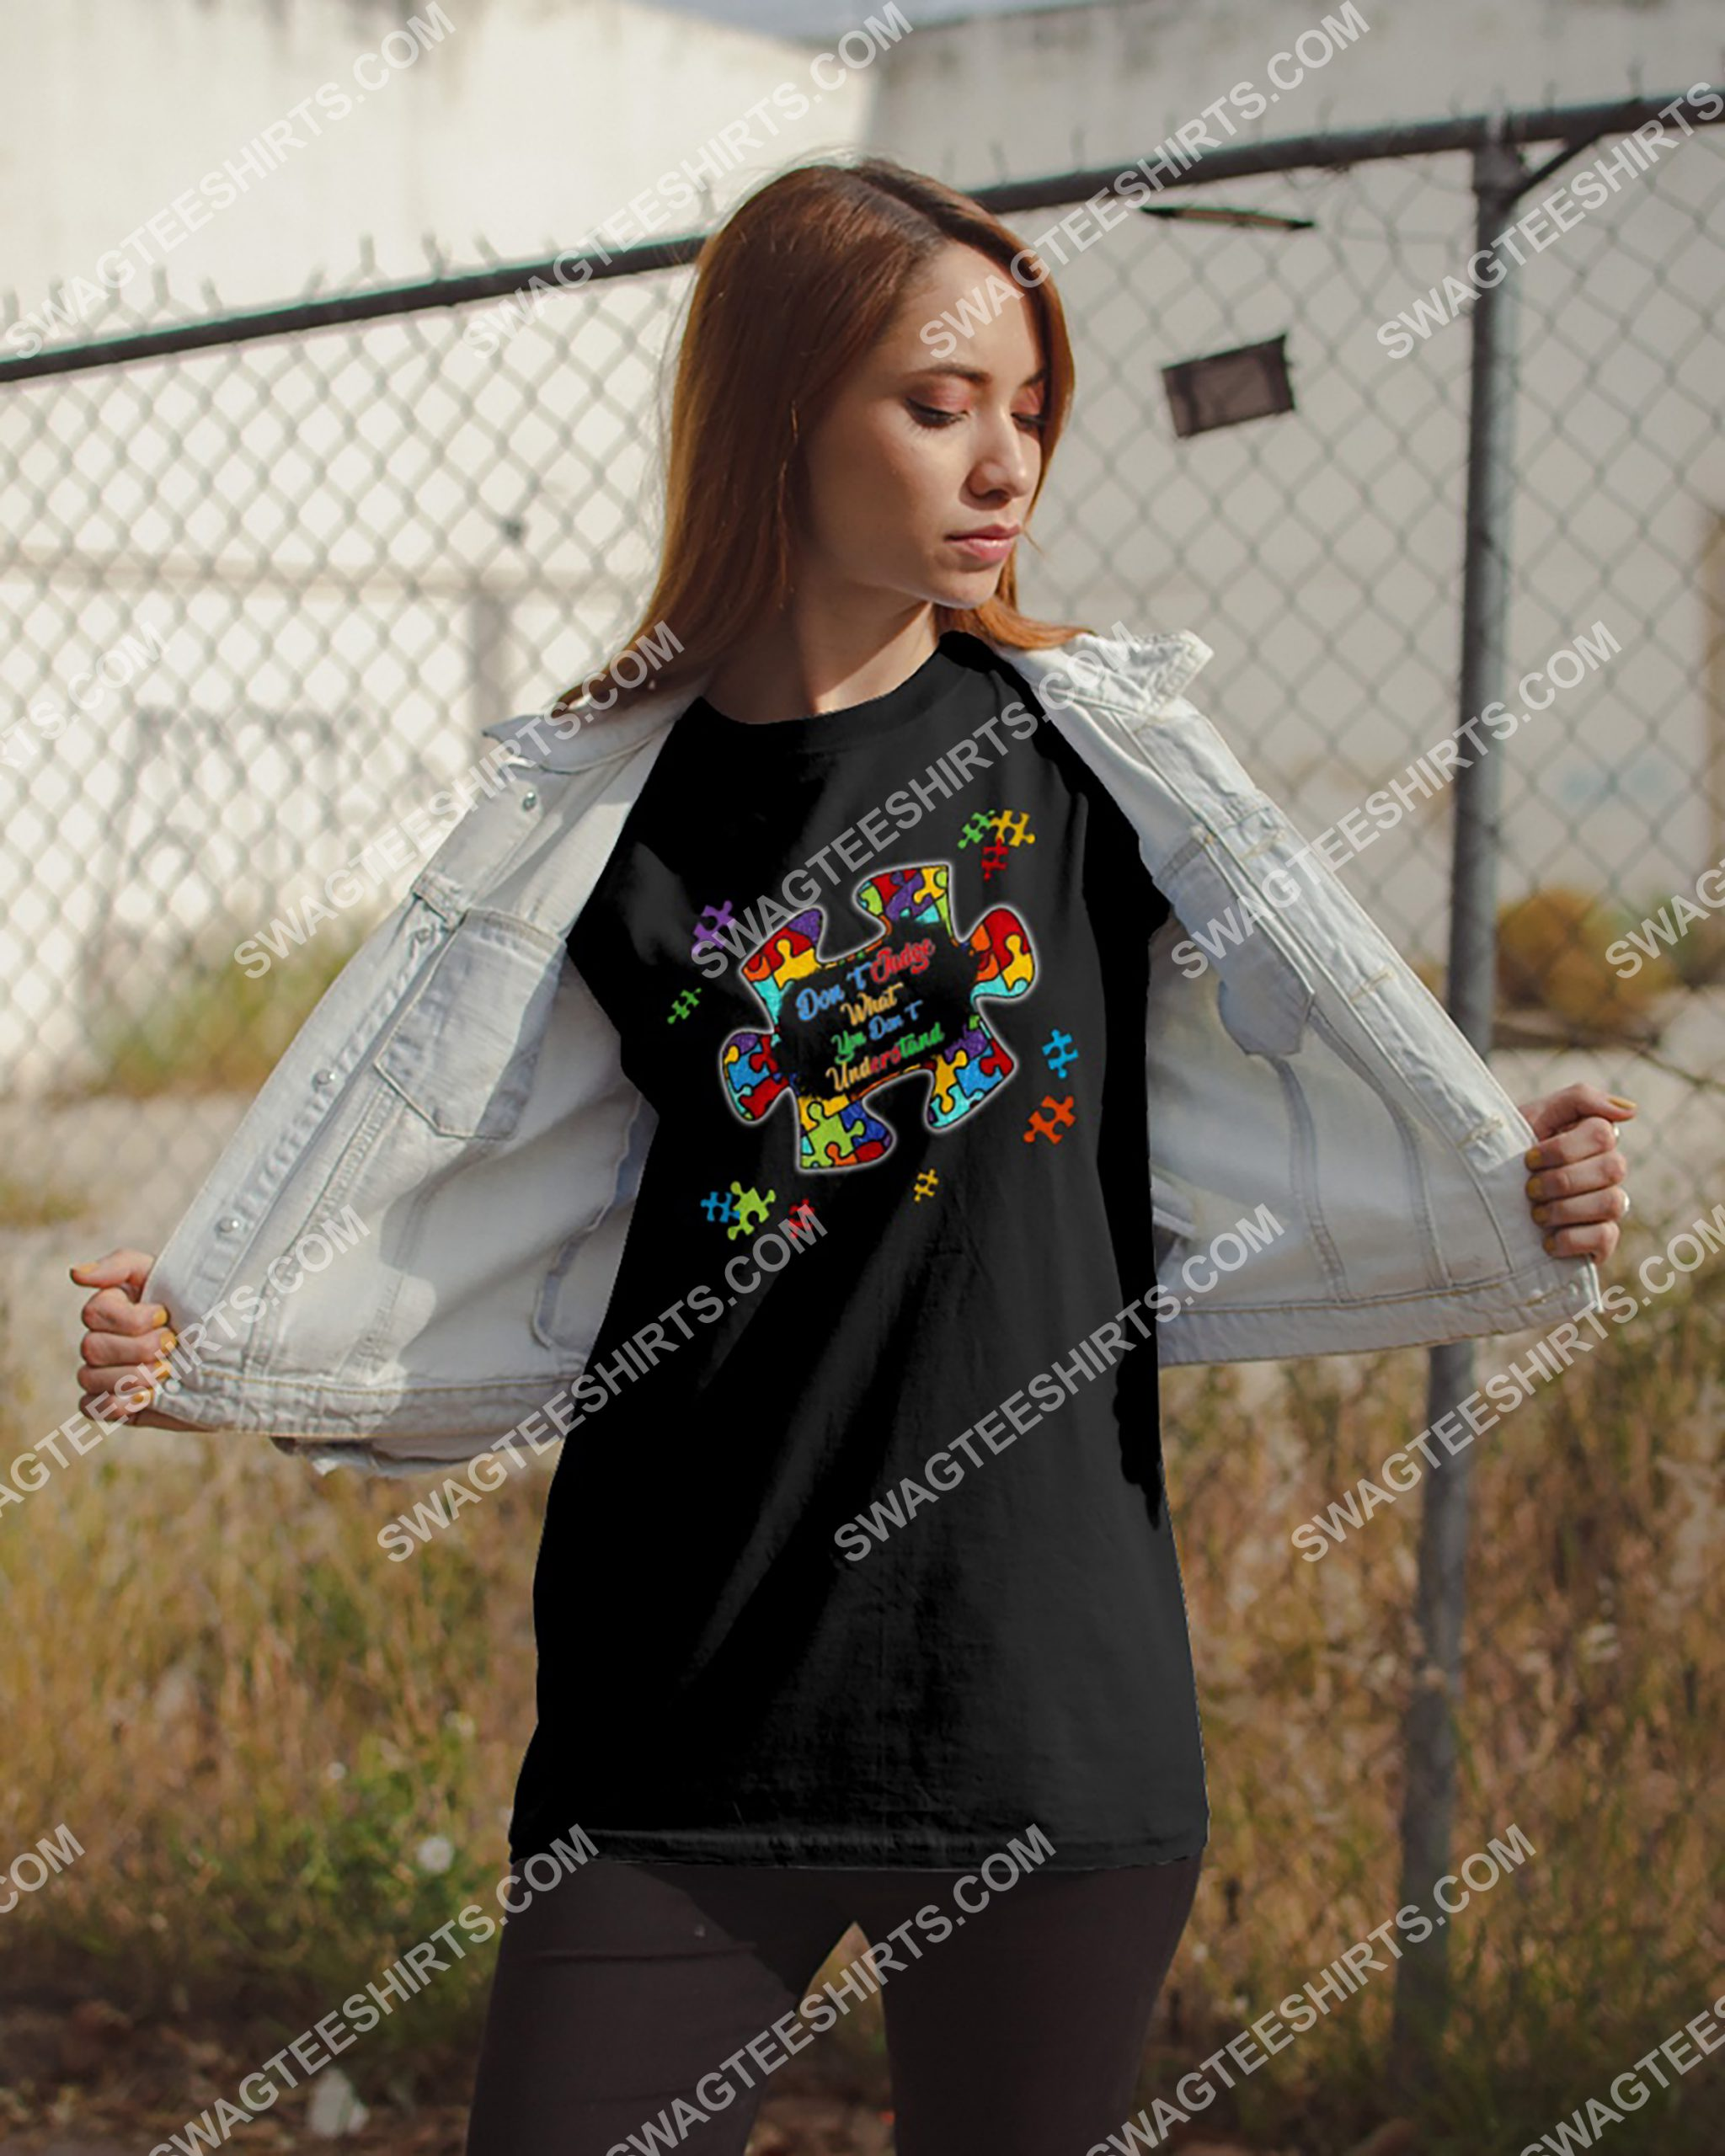 don't judge what you don't understand autism awareness shirt 2(1) - Copy